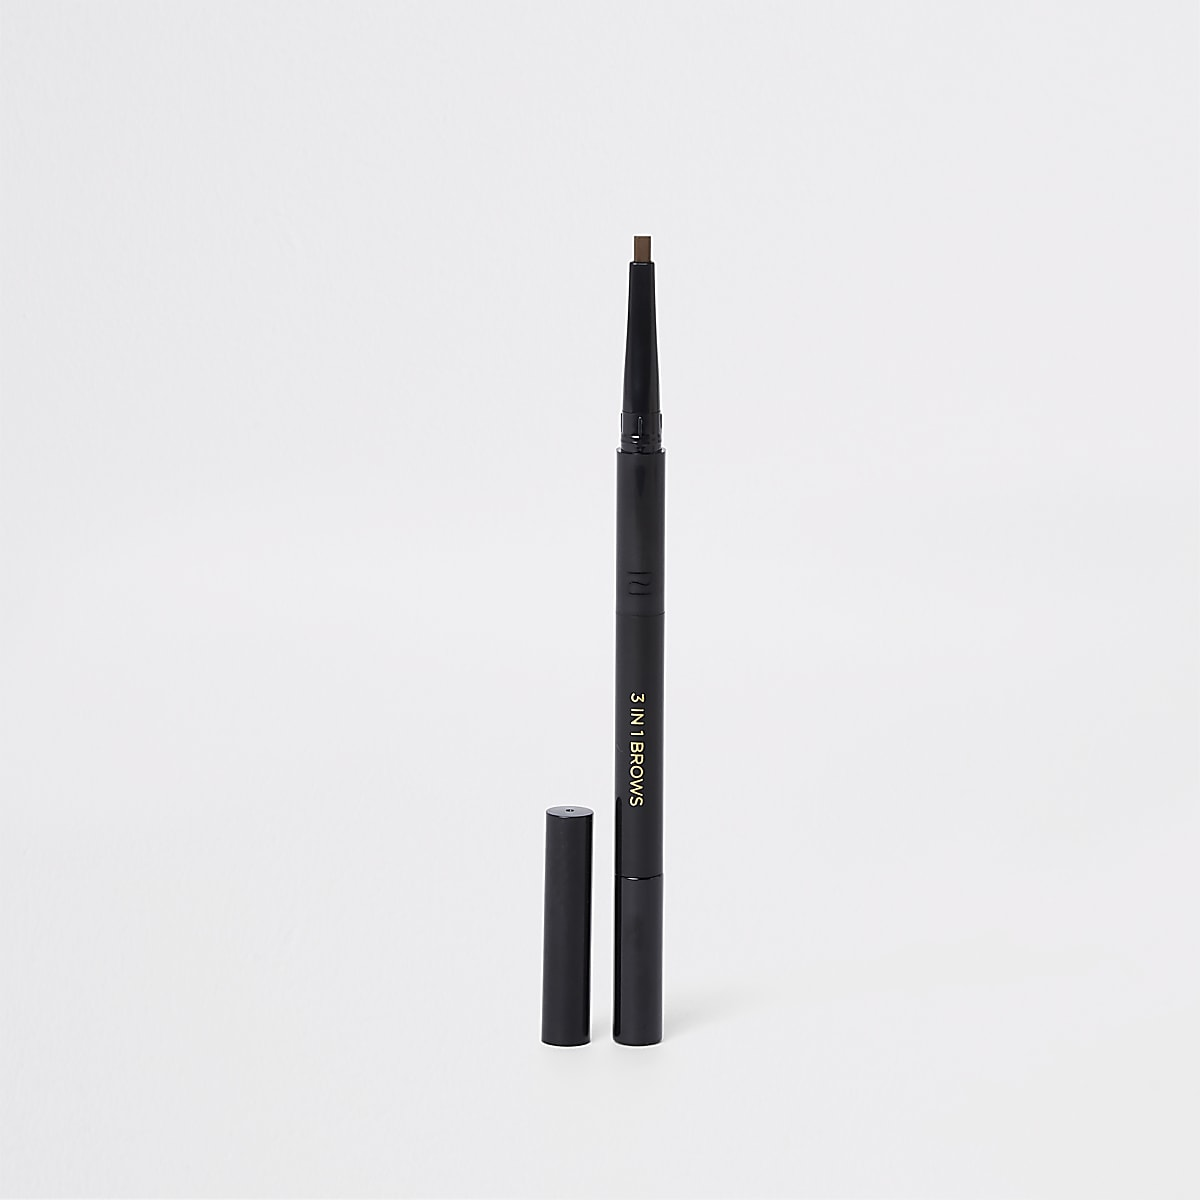 Brown 3 in 1 brow pencil